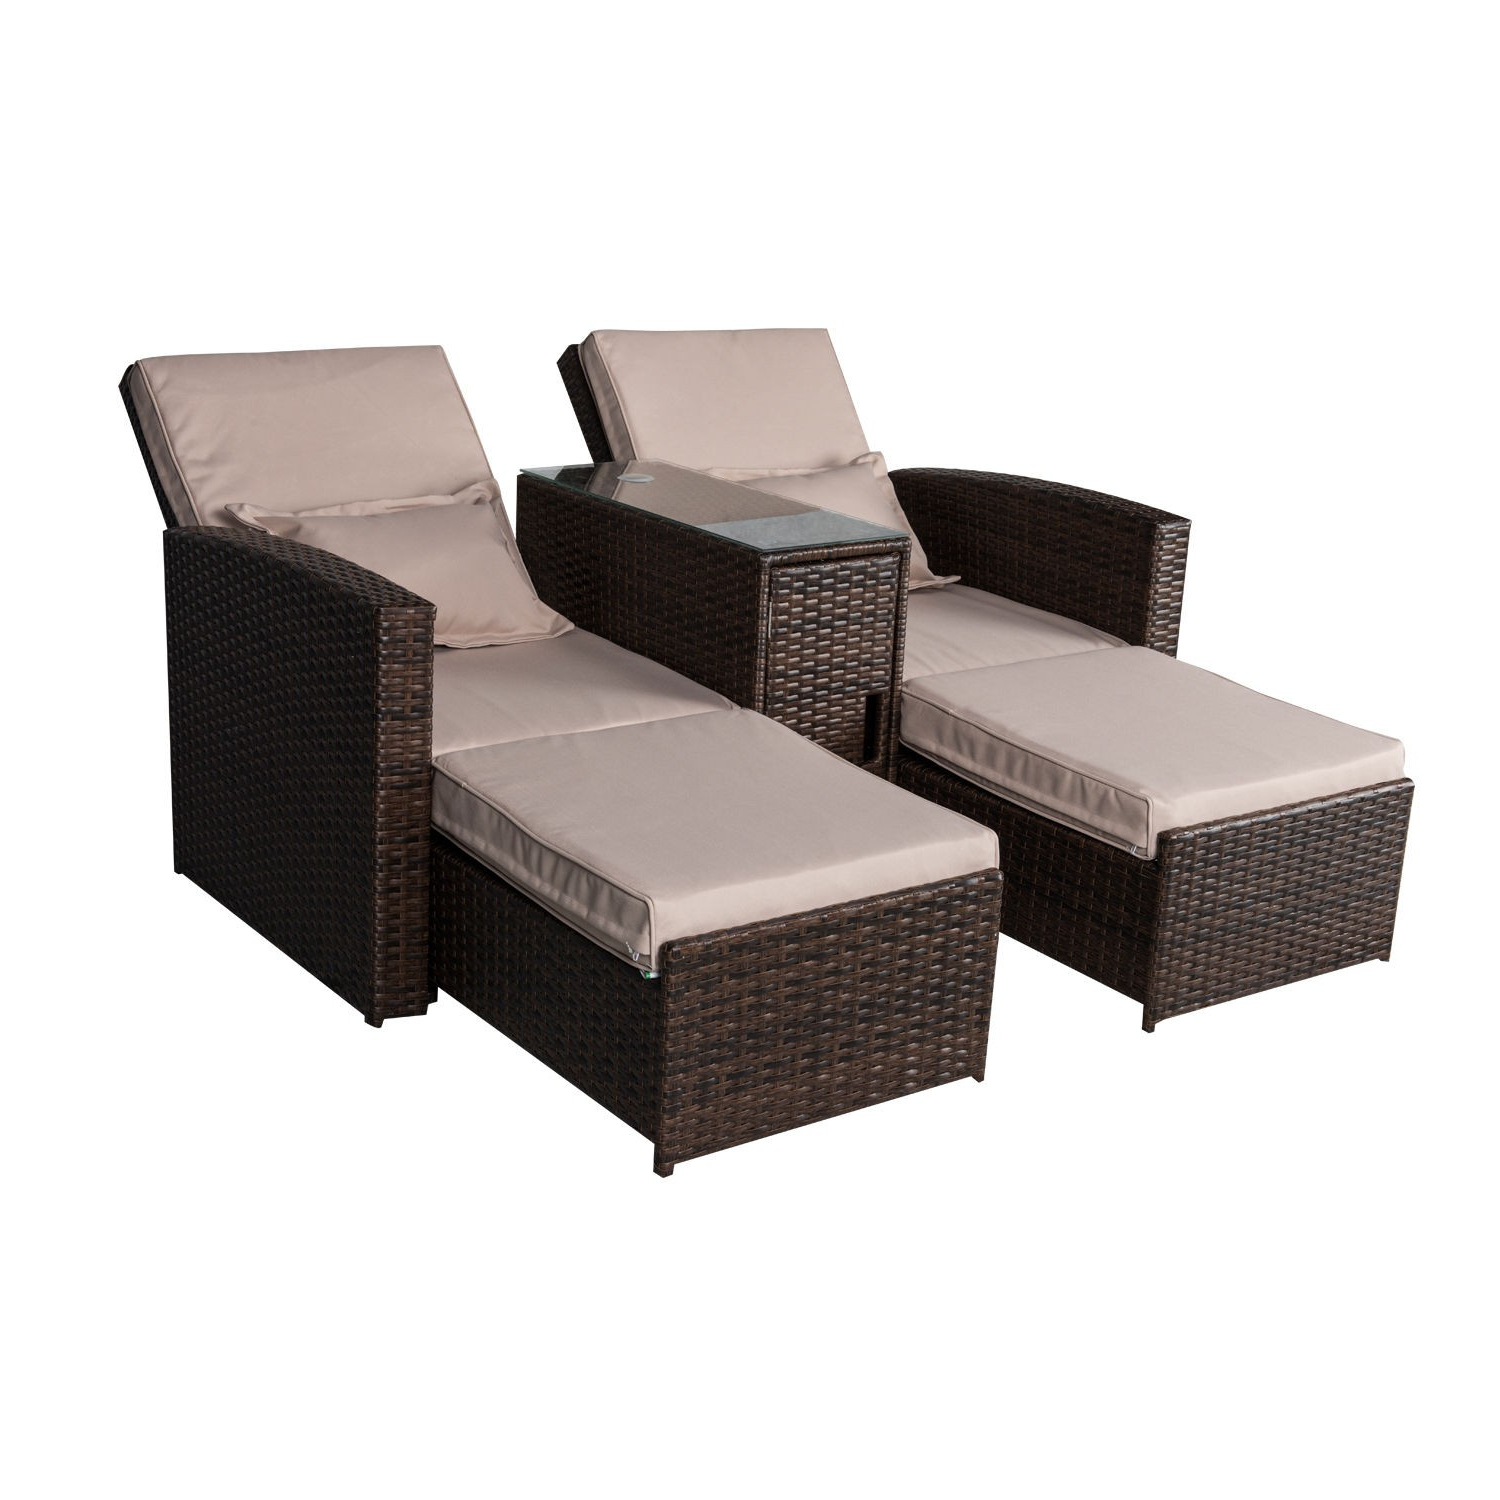 Outsunny 3 Piece Outdoor Rattan Wicker Chaise Lounge Within Well Known Colby Manual Reclining Sofas (View 13 of 20)